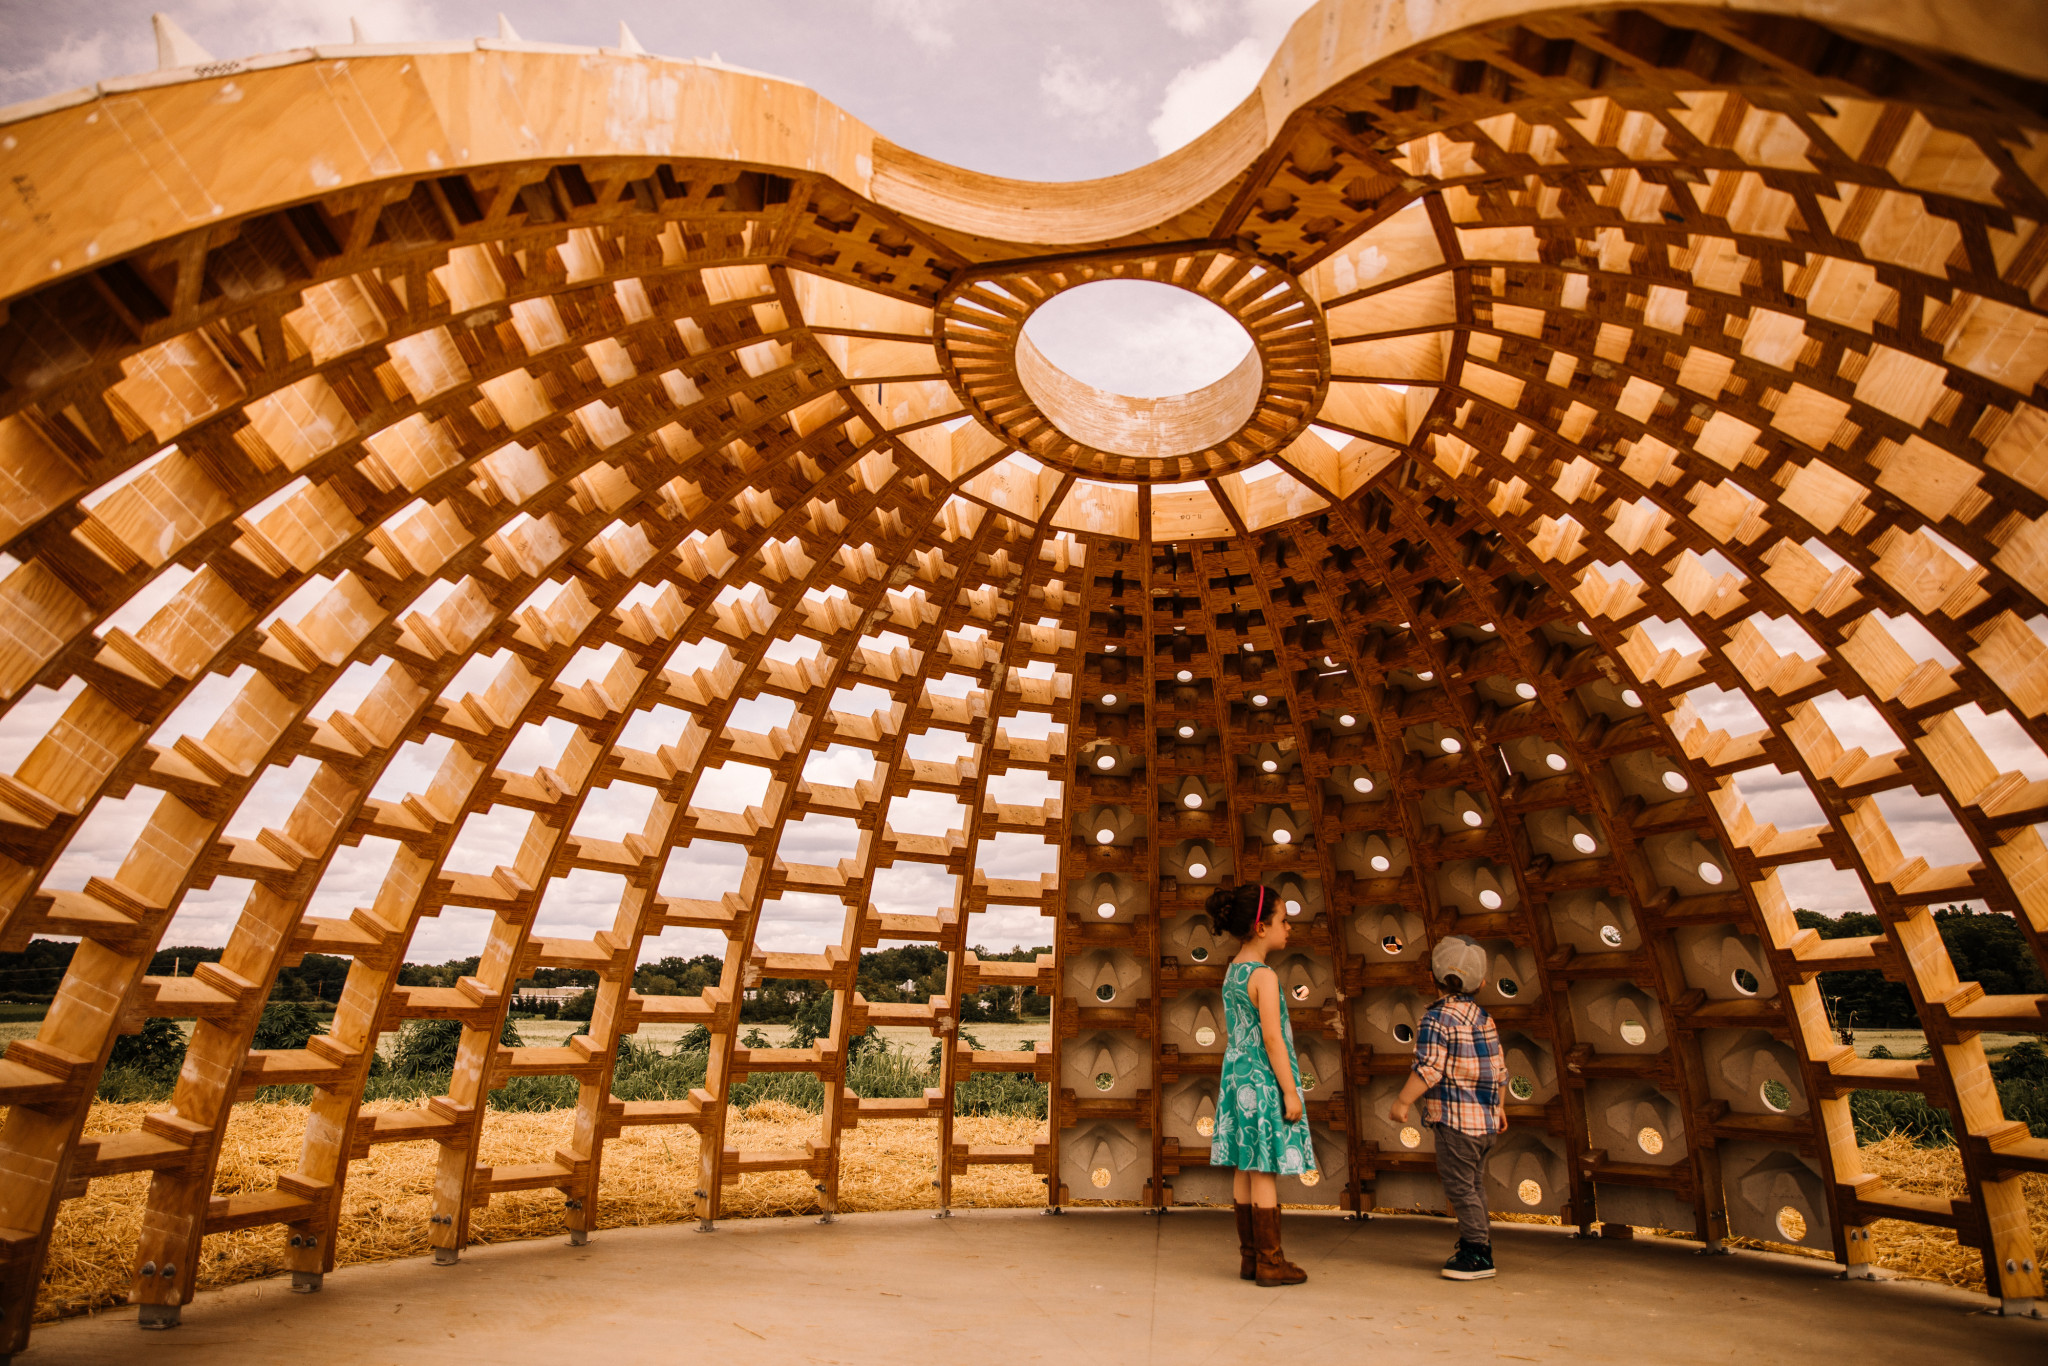 Children stand within a dome in construction with a honeycomb pattern